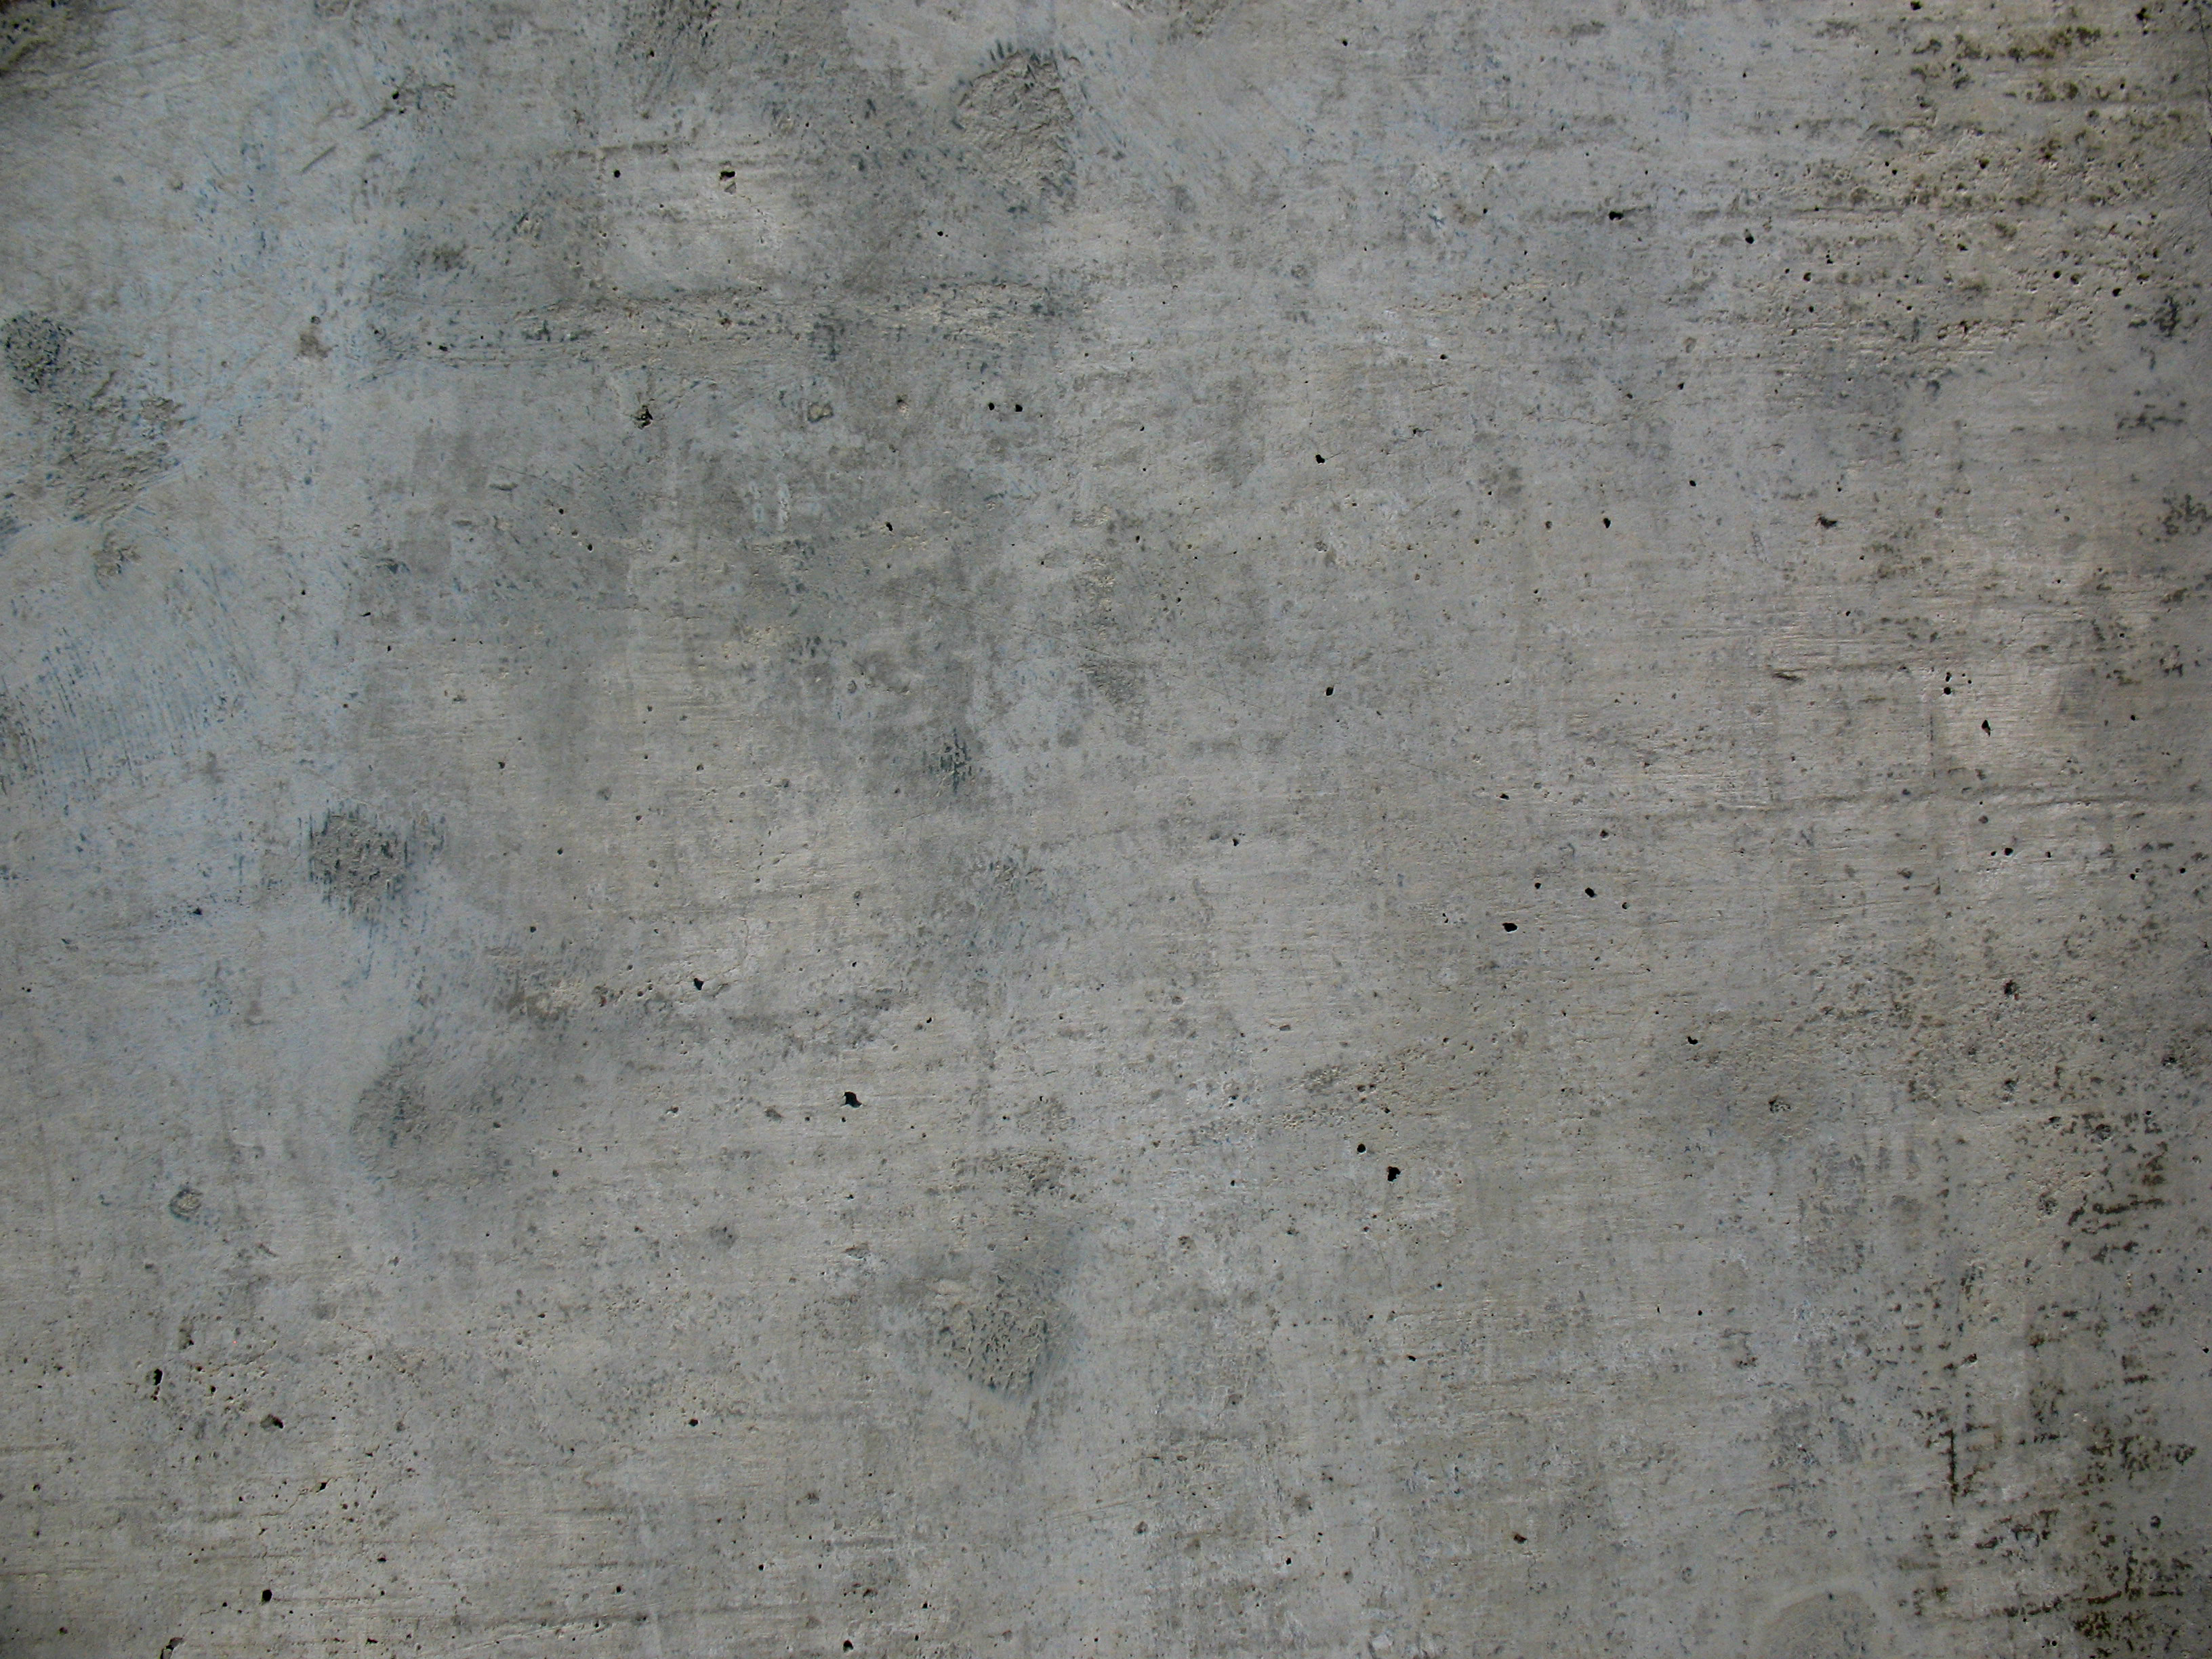 concrete concrete texture download photos beton texture background image cement. Black Bedroom Furniture Sets. Home Design Ideas